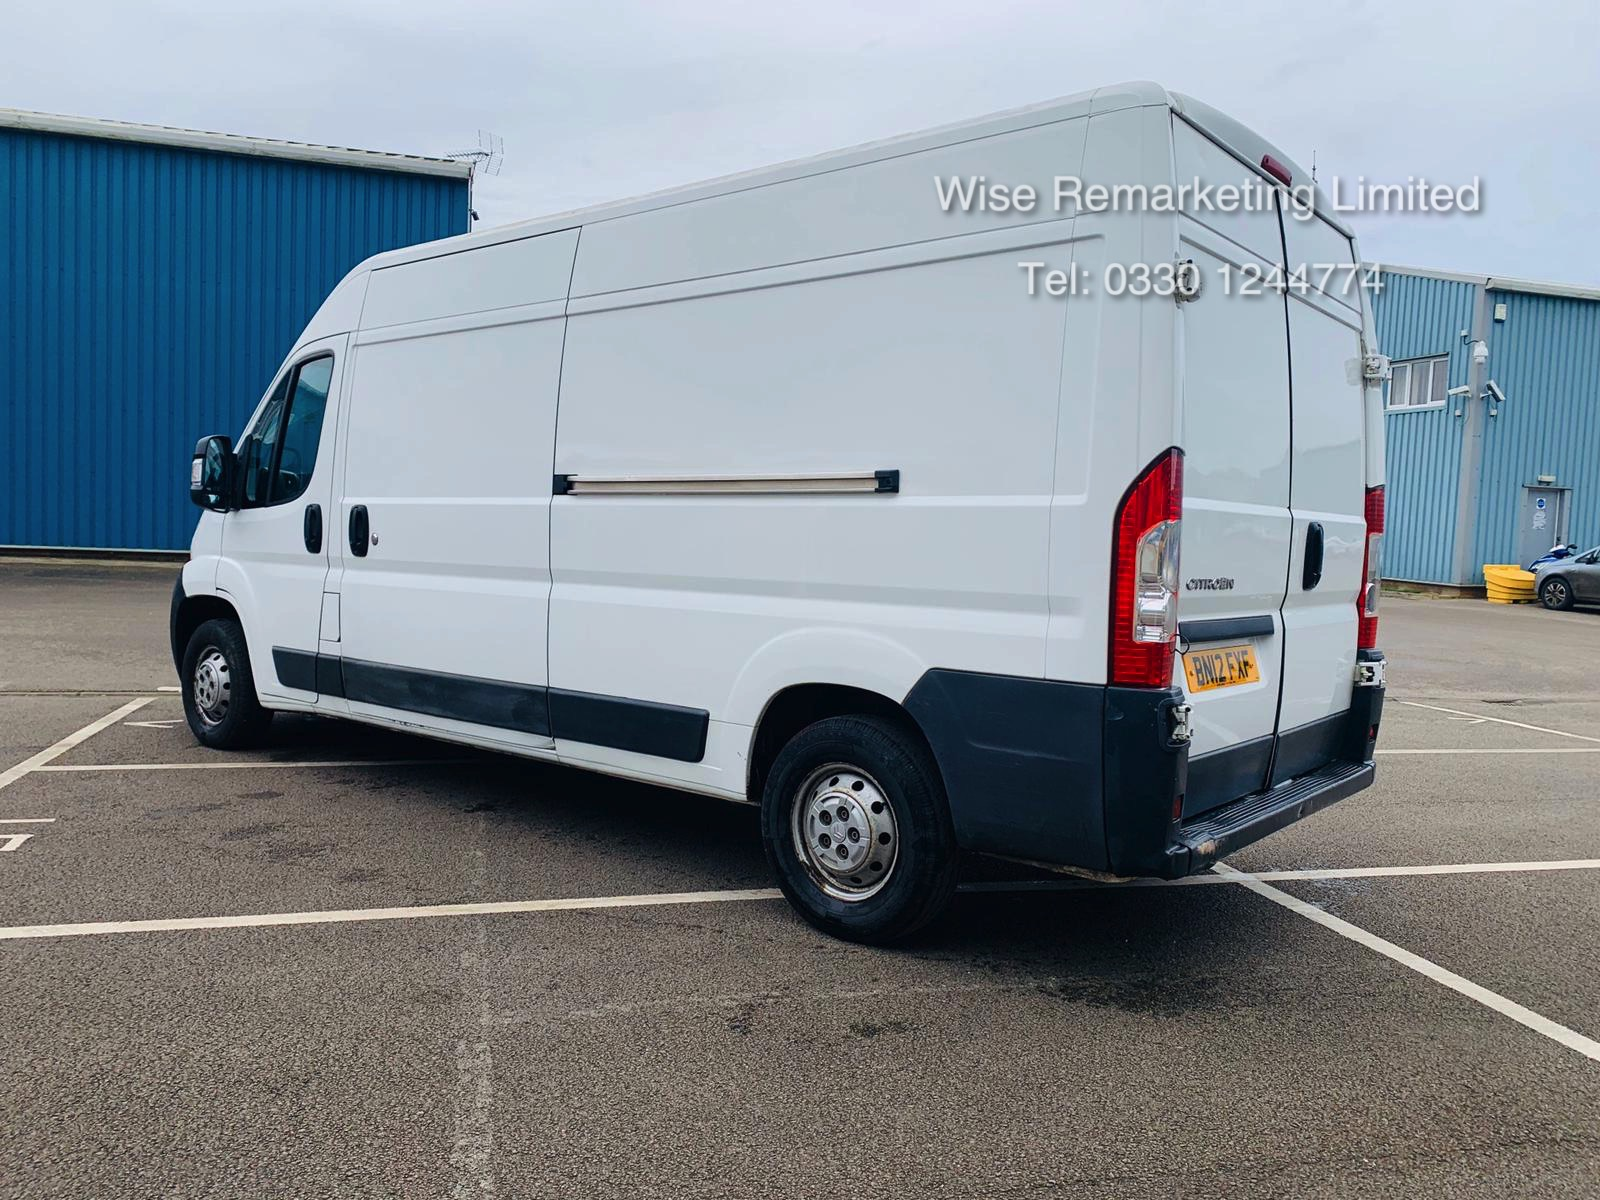 Citroen Relay 35 2.2 HDi (130 BHP) LWB 2012 12 Reg - 6 Speed - Ply Lined SAVE 20% NO VAT - Image 7 of 20